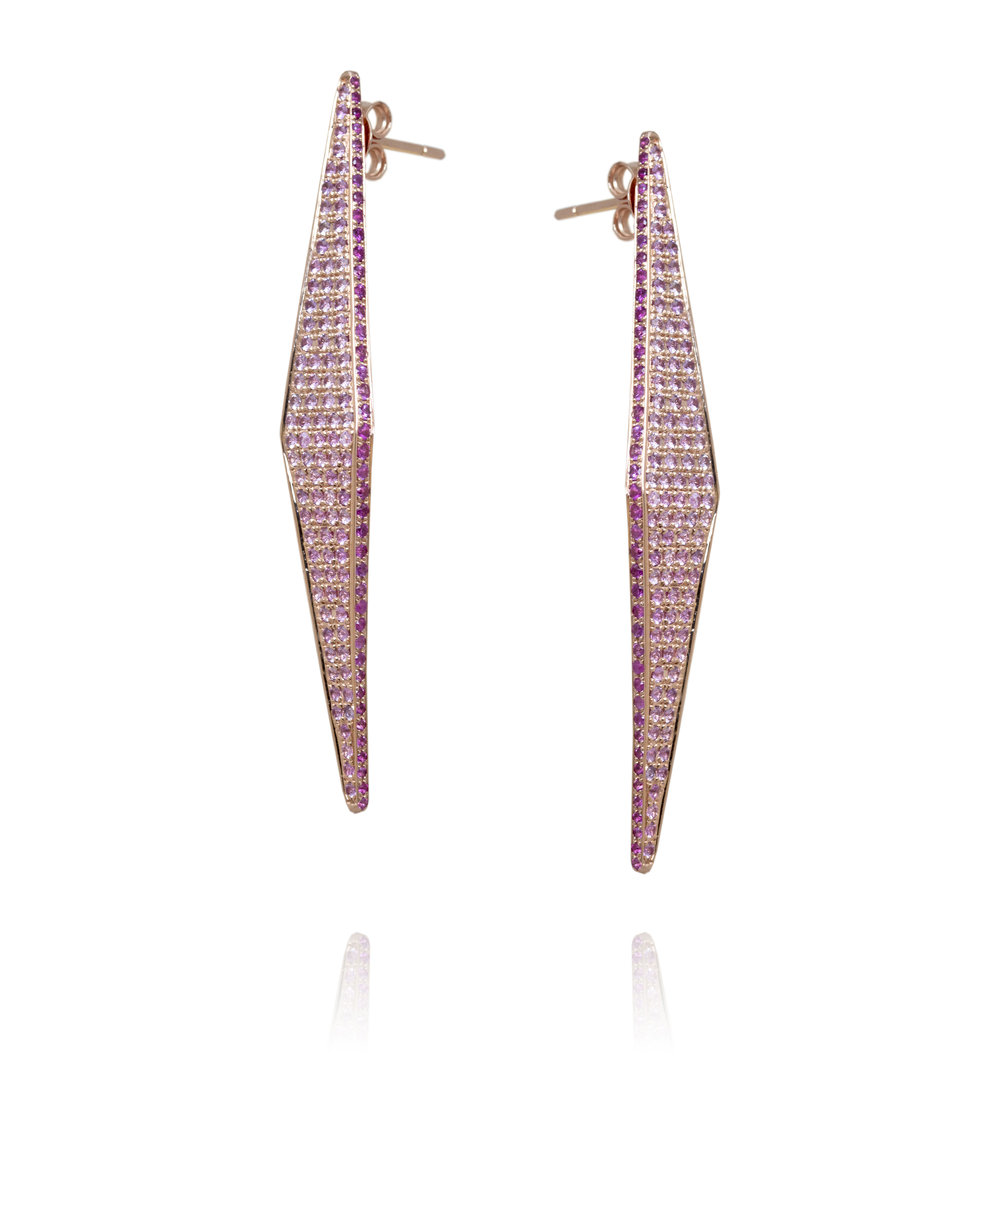 Earrings  18KT Rose Gold, Pink Sapphires  REF. MOI266